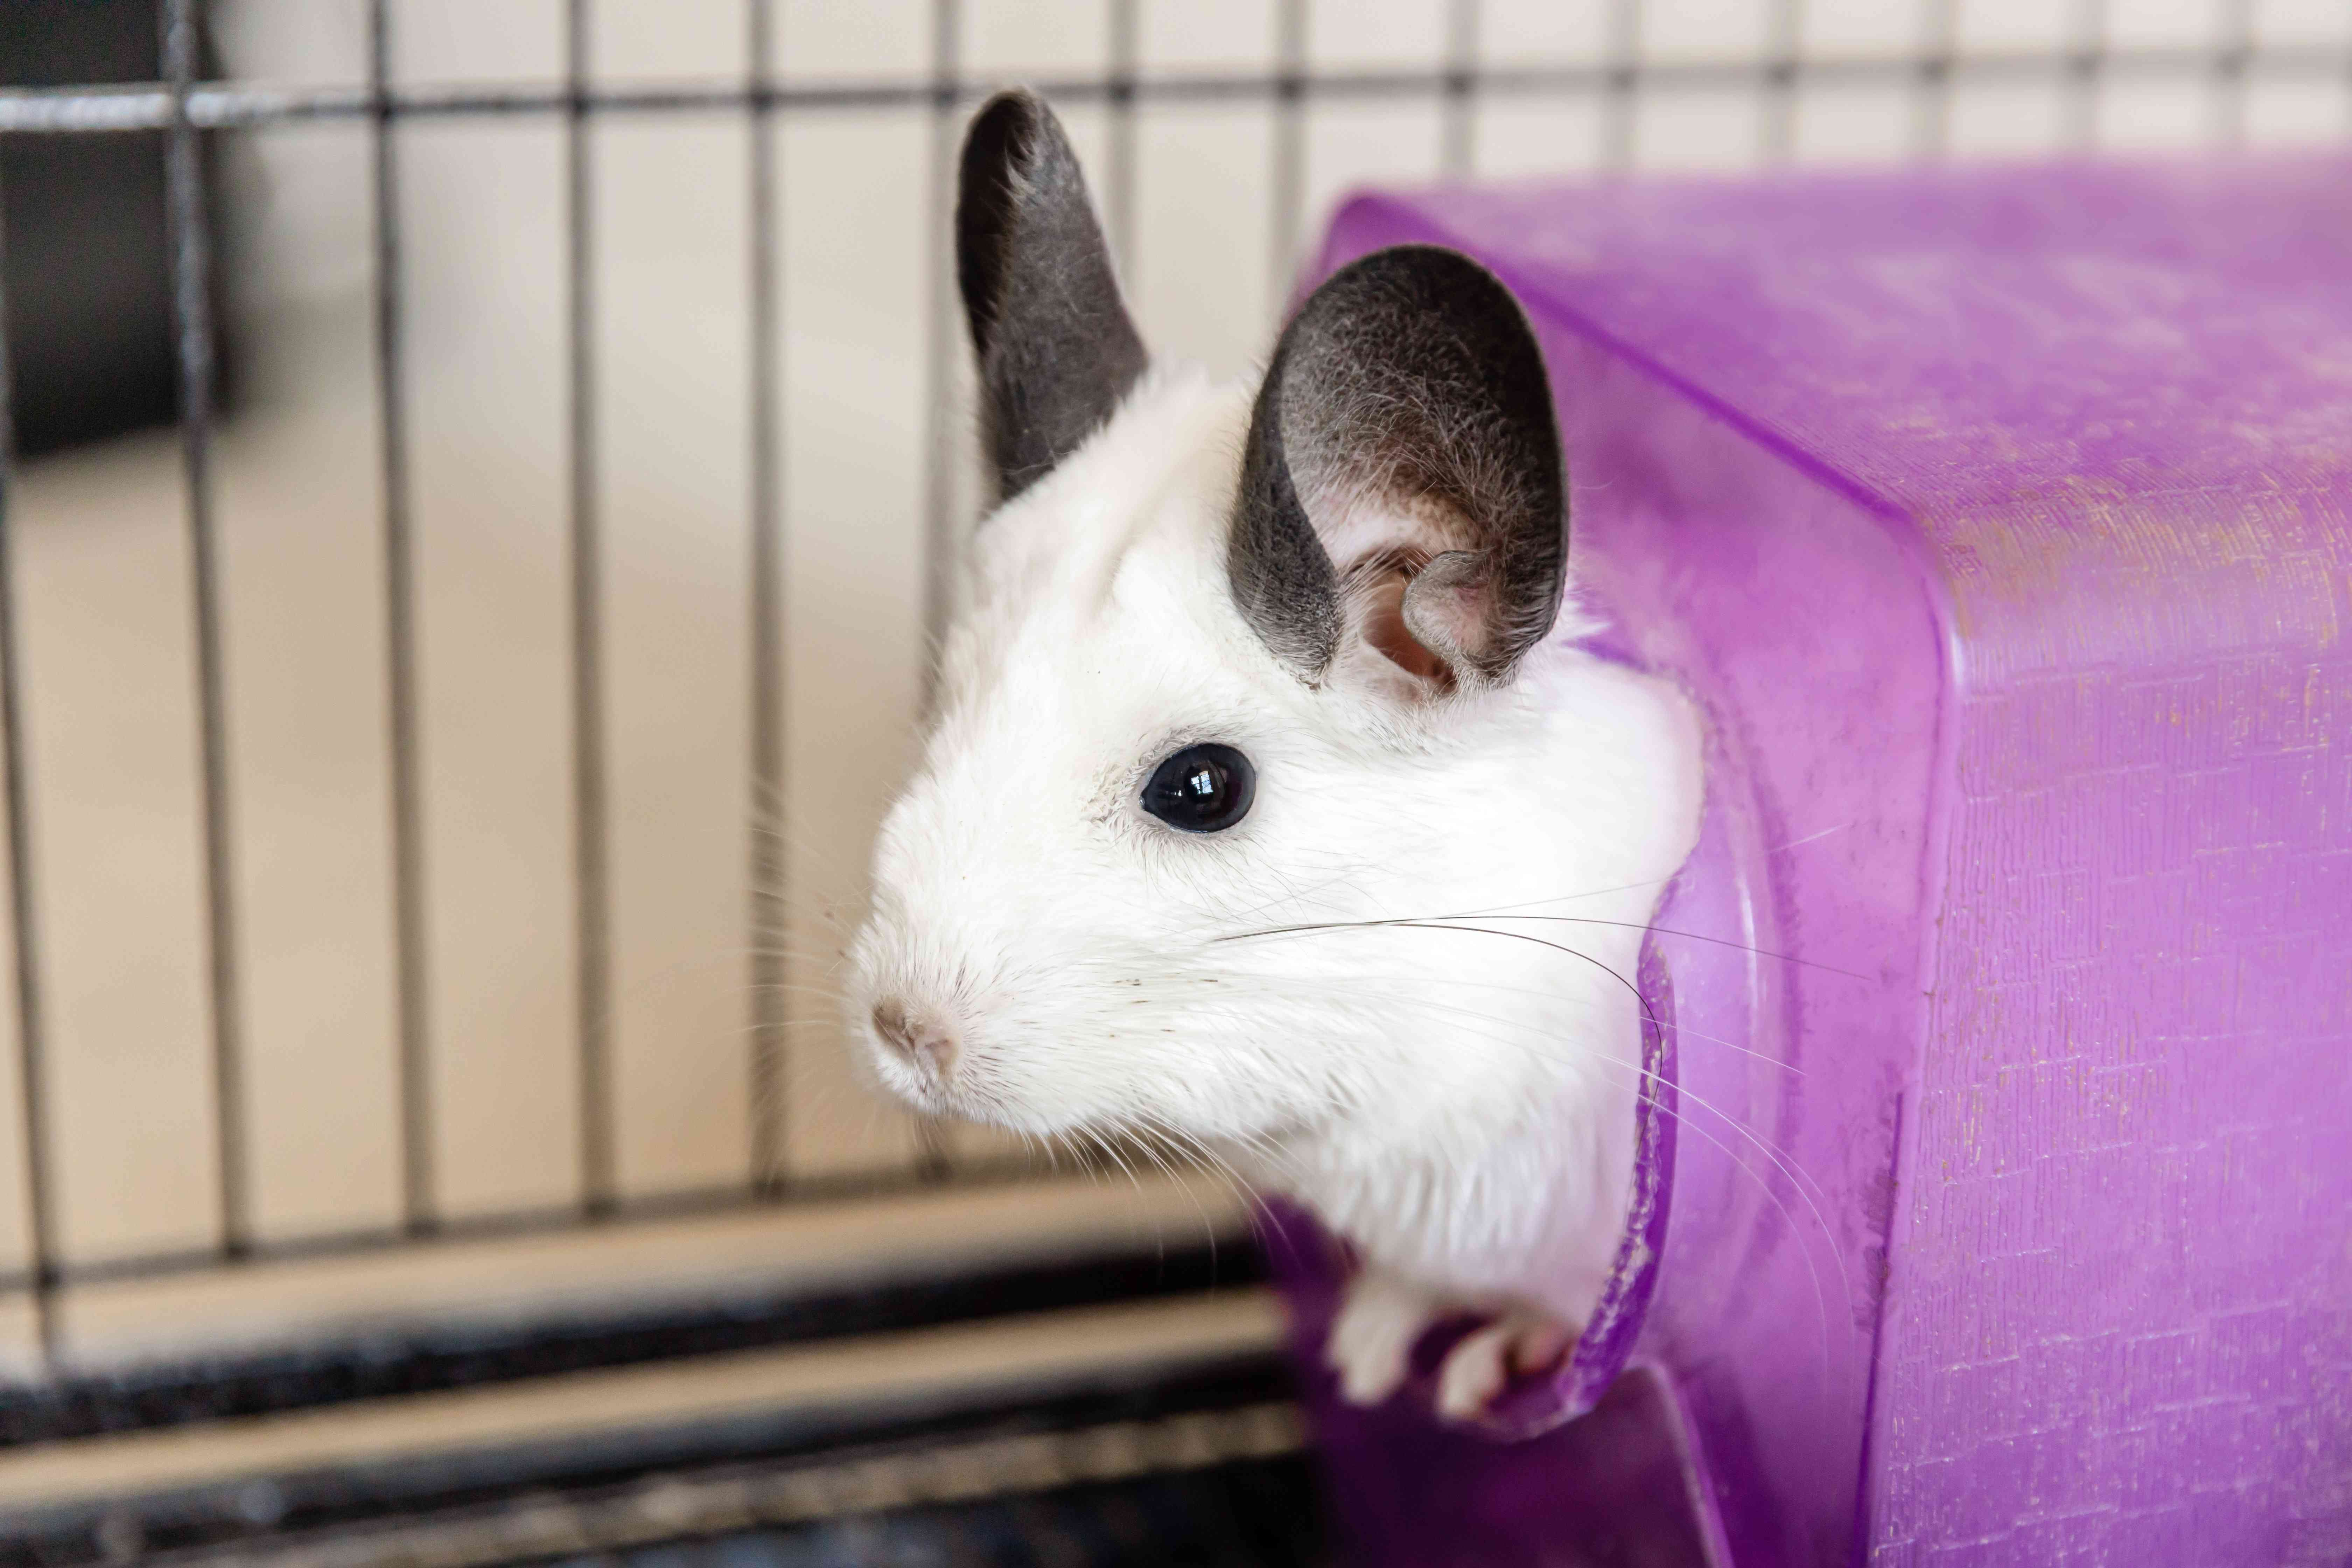 White chinchilla with gray ears poking head out of purple toy